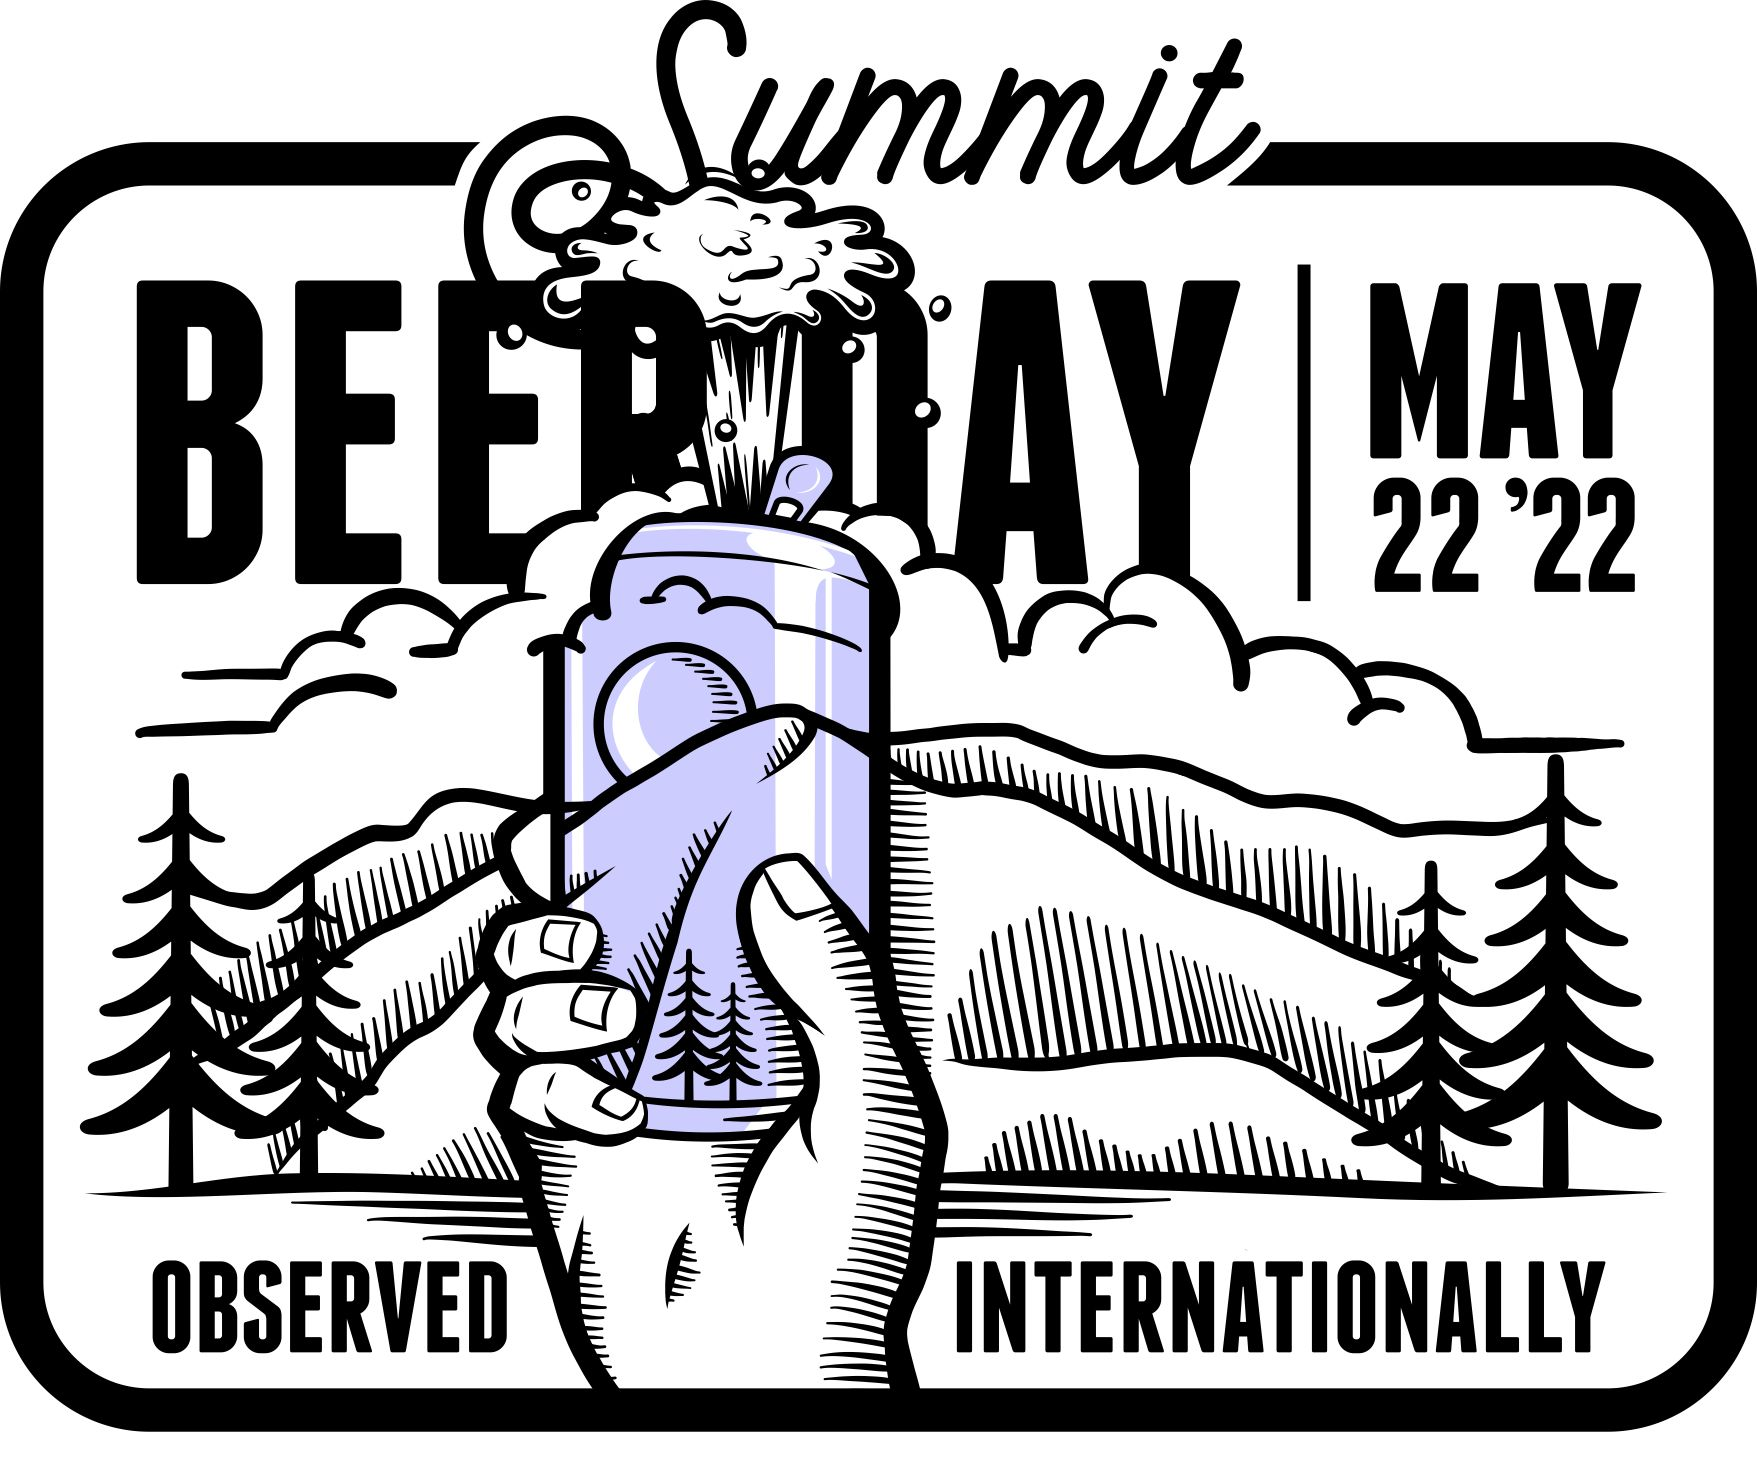 Beer Summit Day